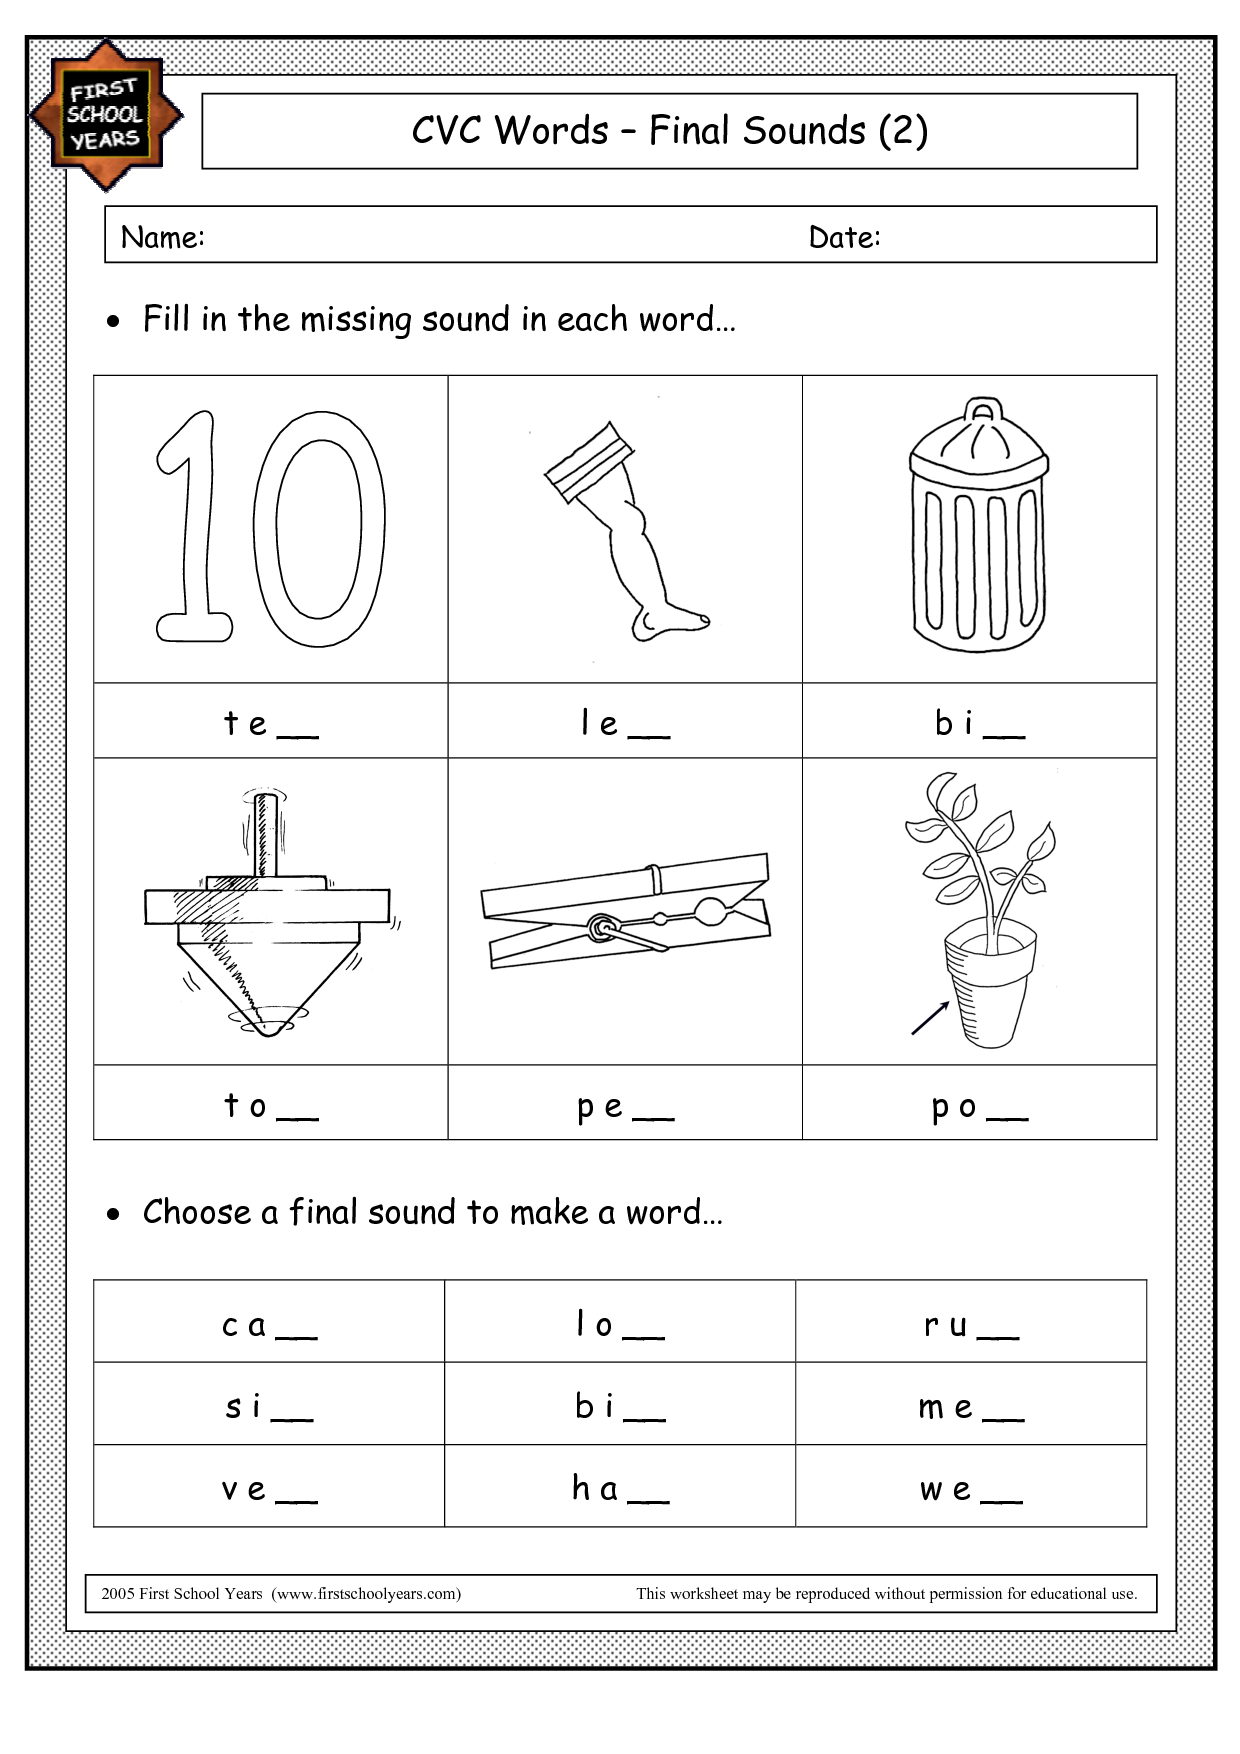 Worksheet Kindergarten Beginning Sounds beginning sounds for kindergarten images guru sound worksheets